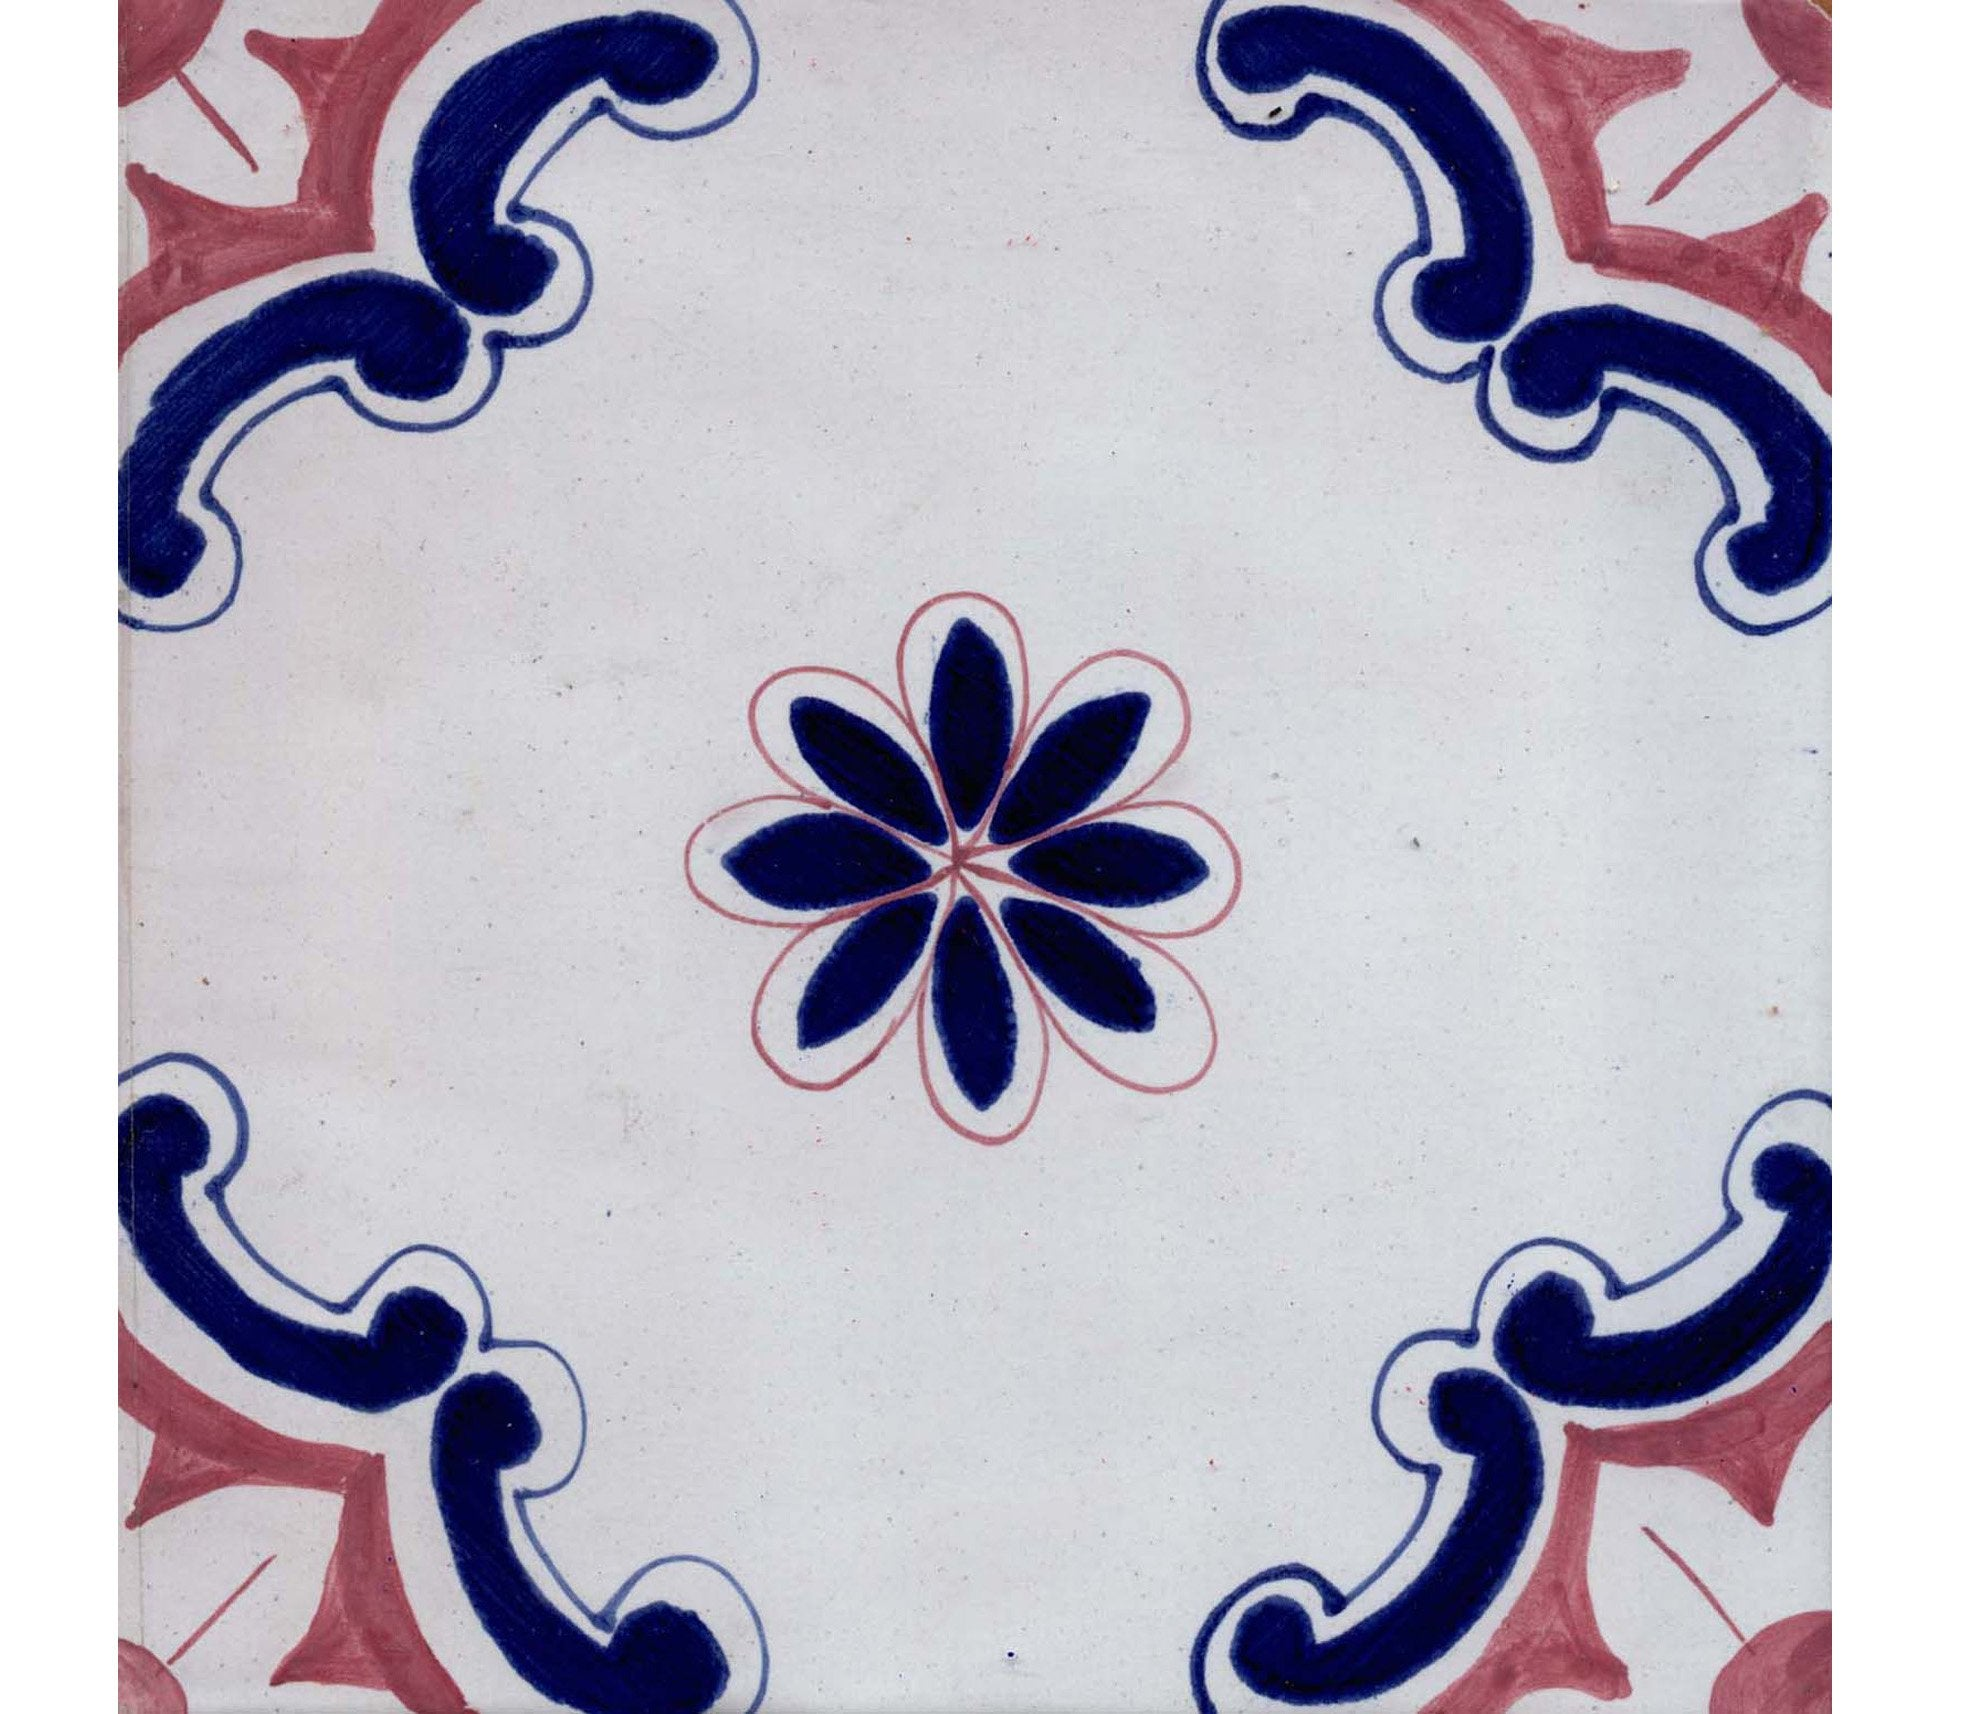 Series S Handpainted Tiles Product Image 39